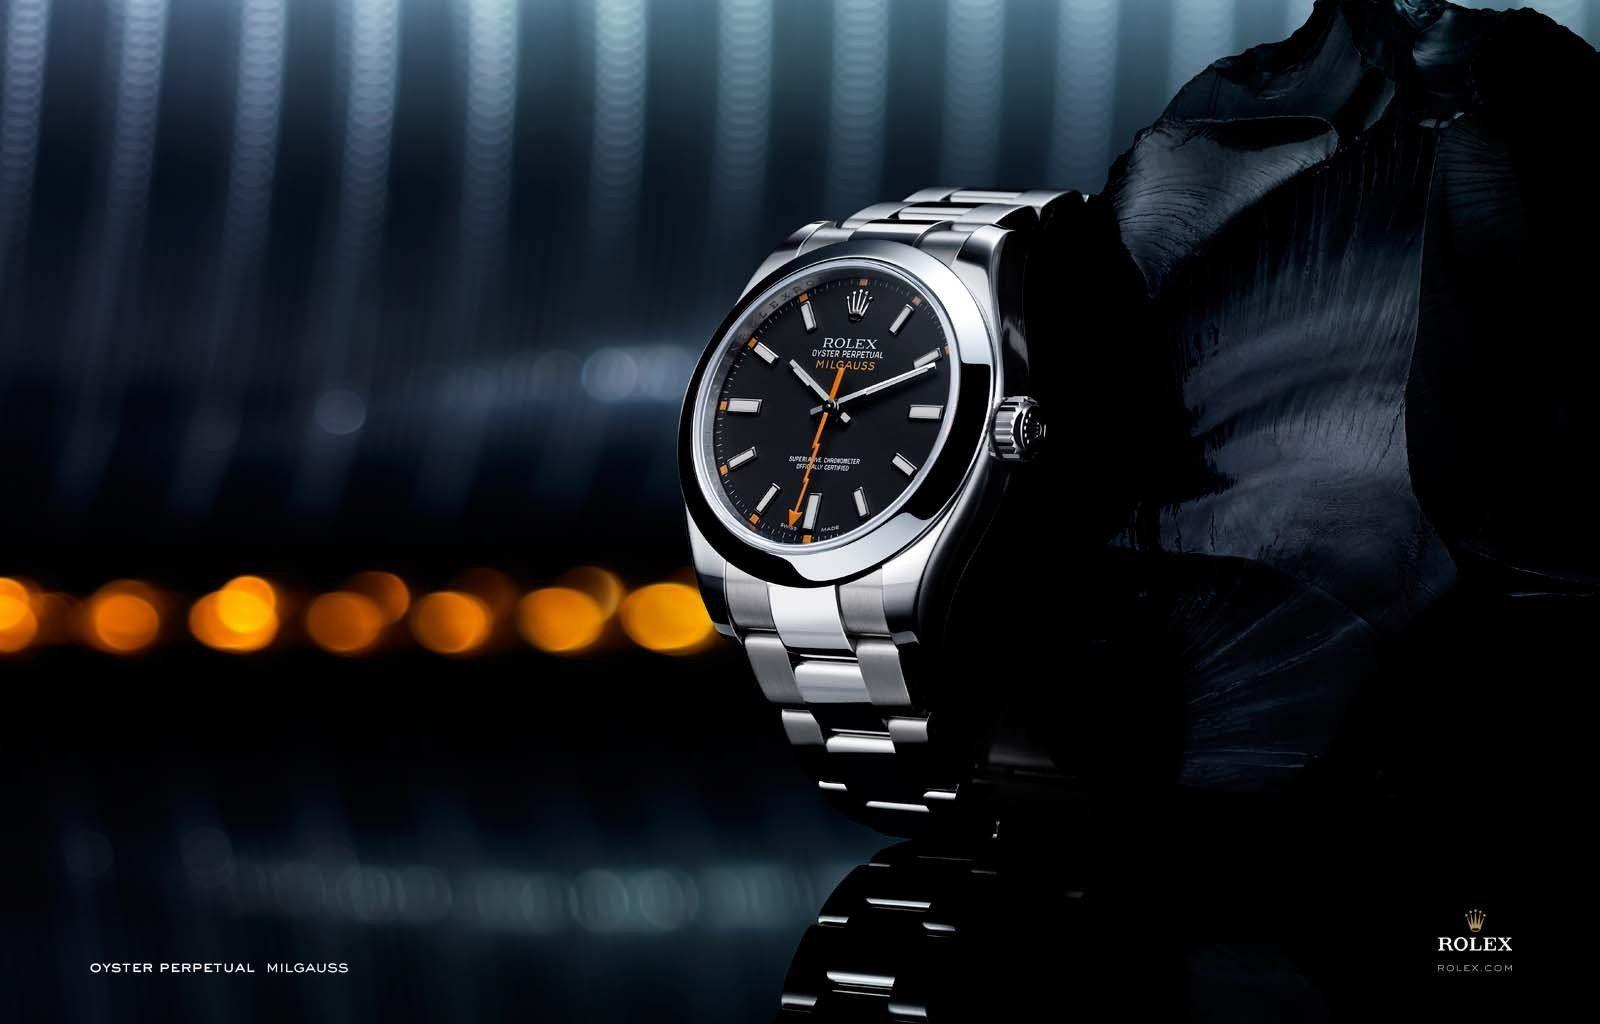 Rolex Watches Wallpapers 1